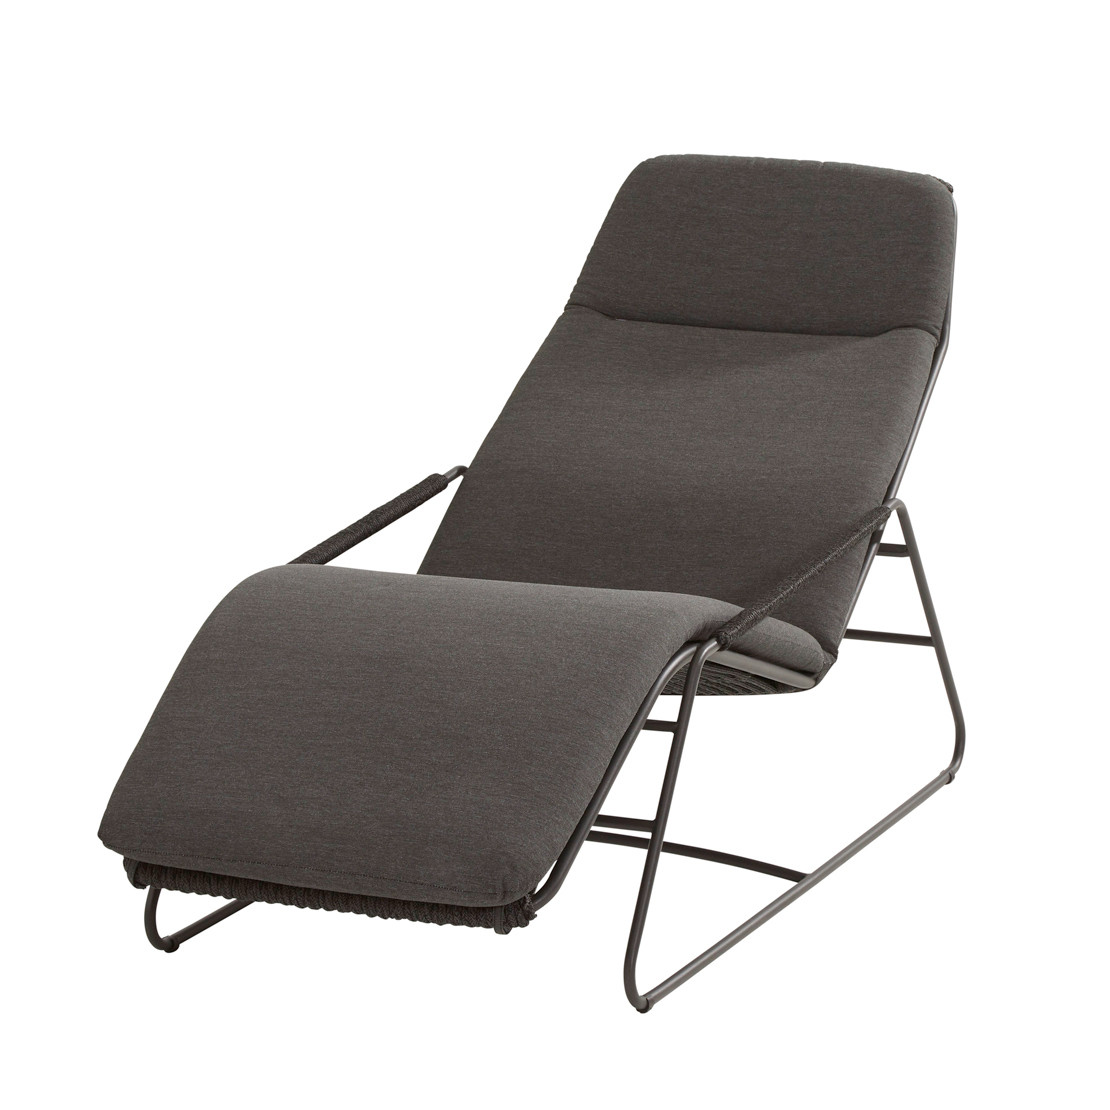 Elba sunlounger with cushion rope